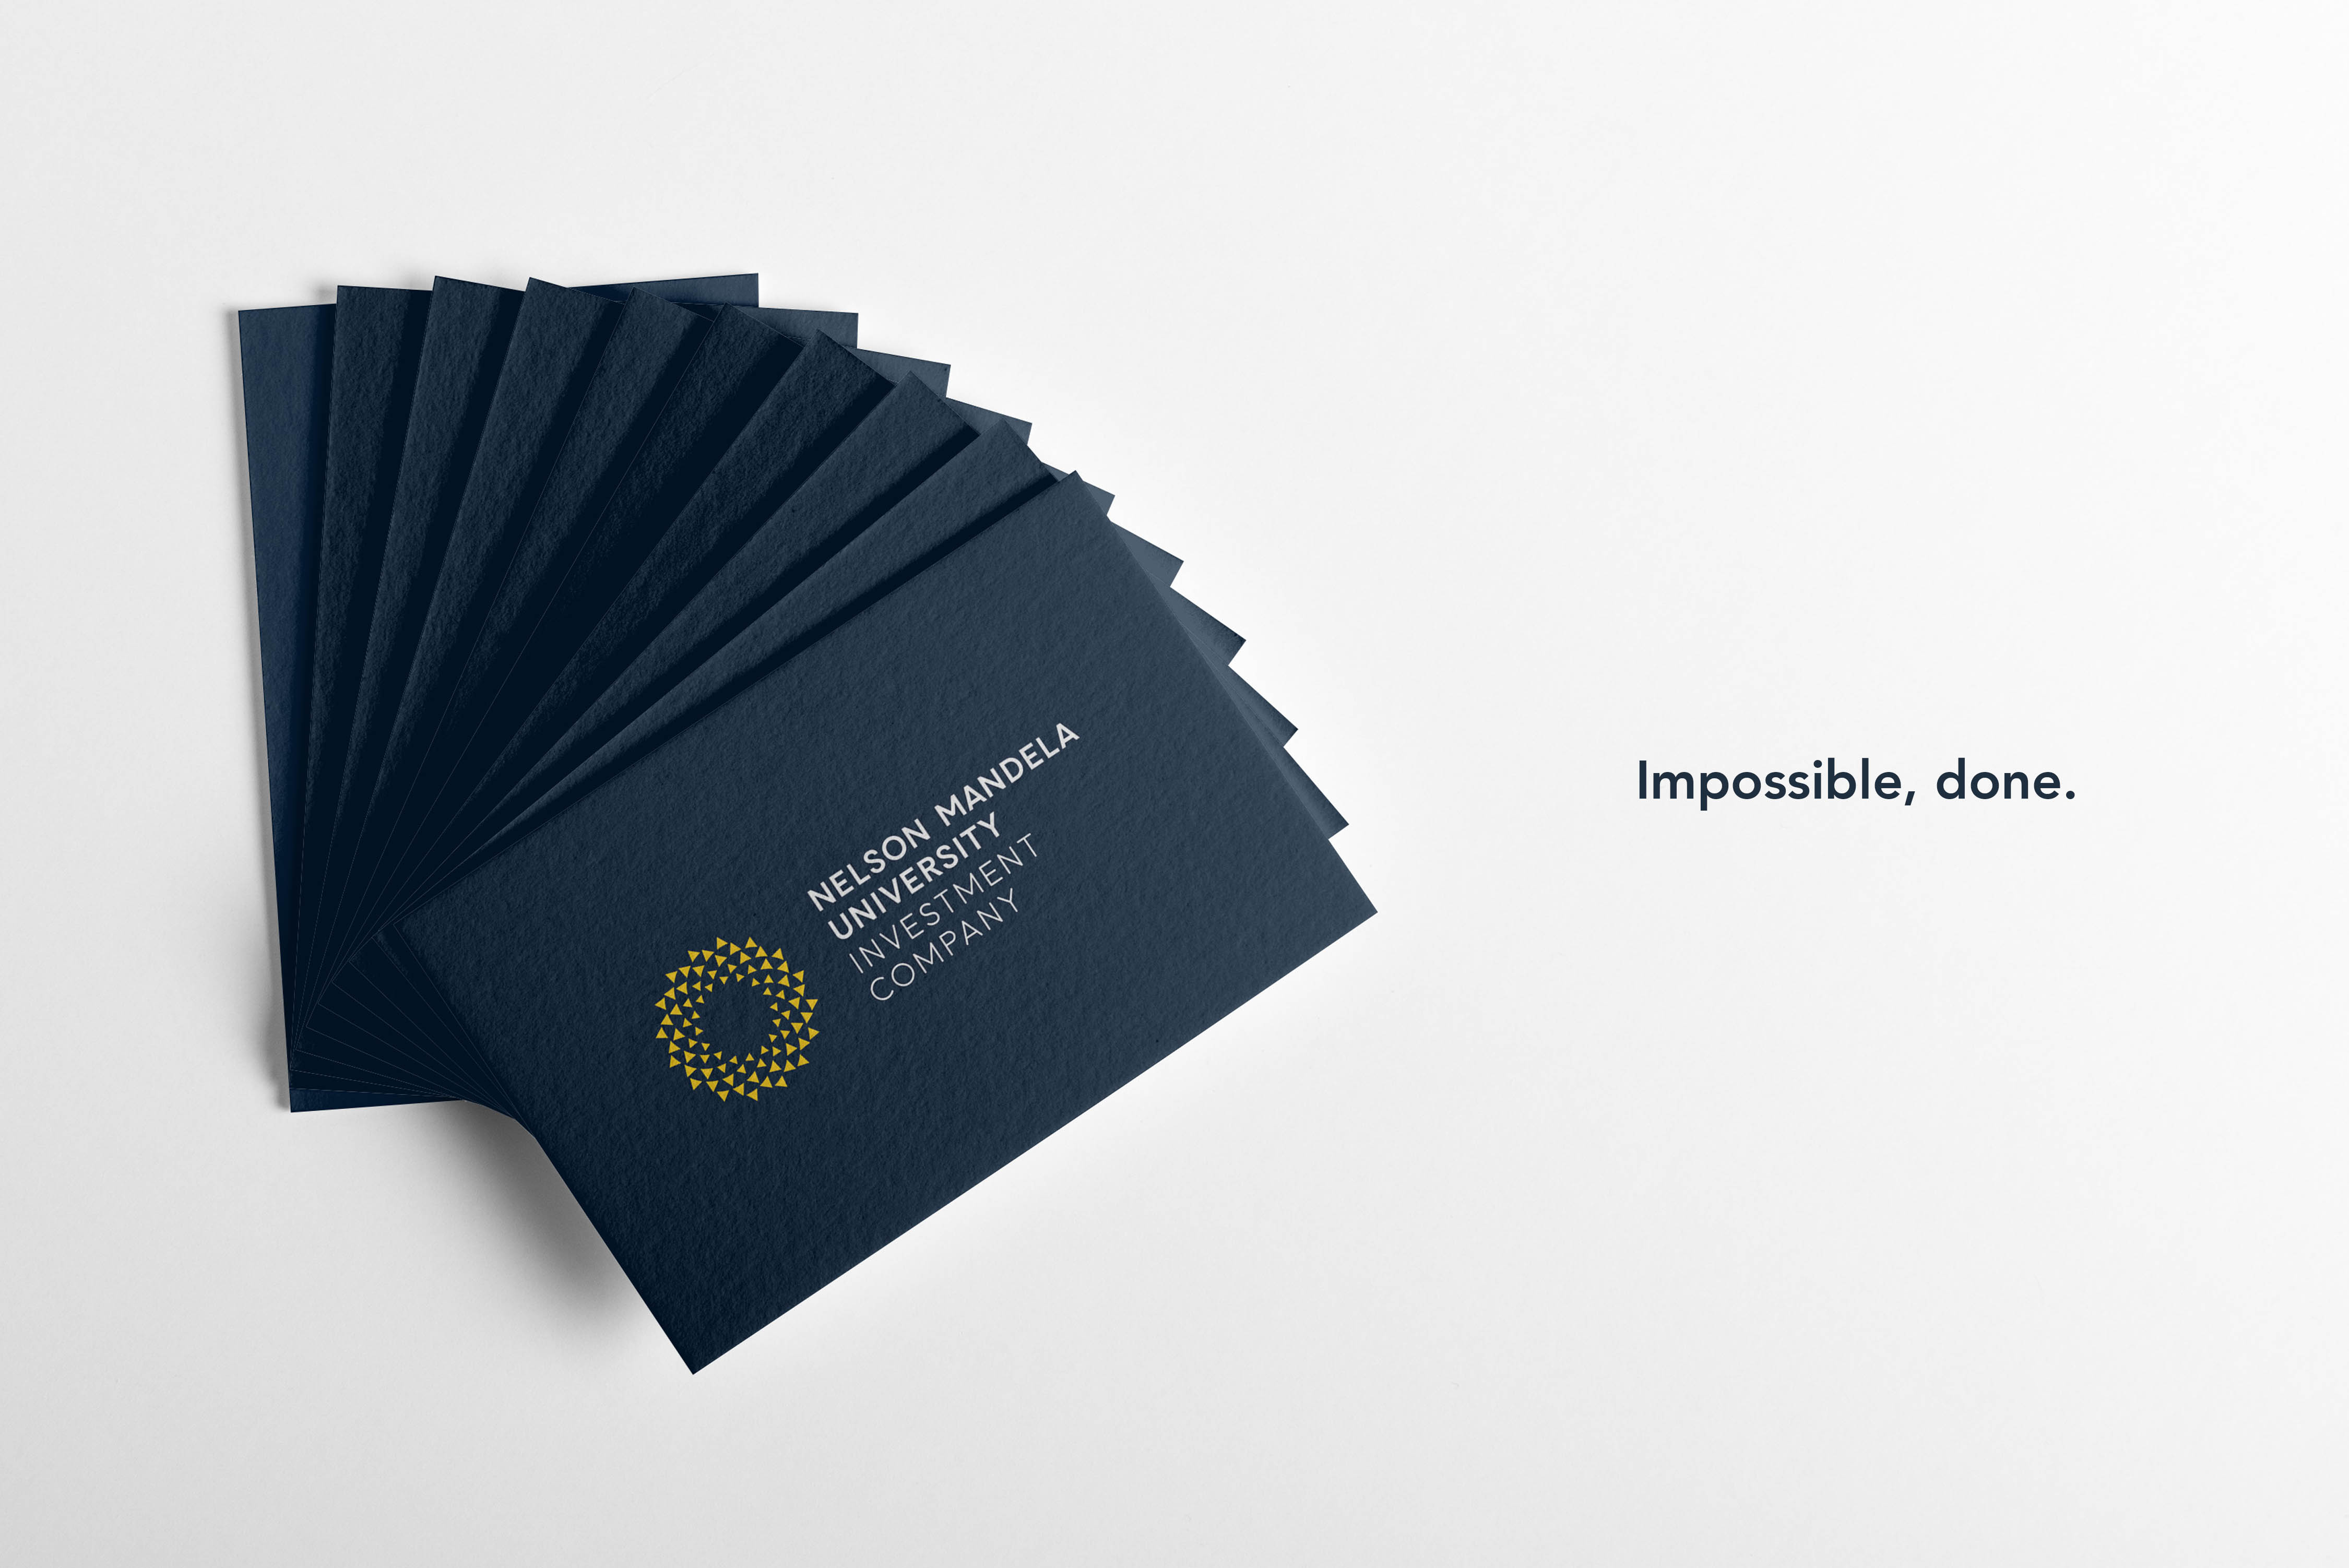 Creative Caterpillar client Nelson Mandela University Investment Company business cards.